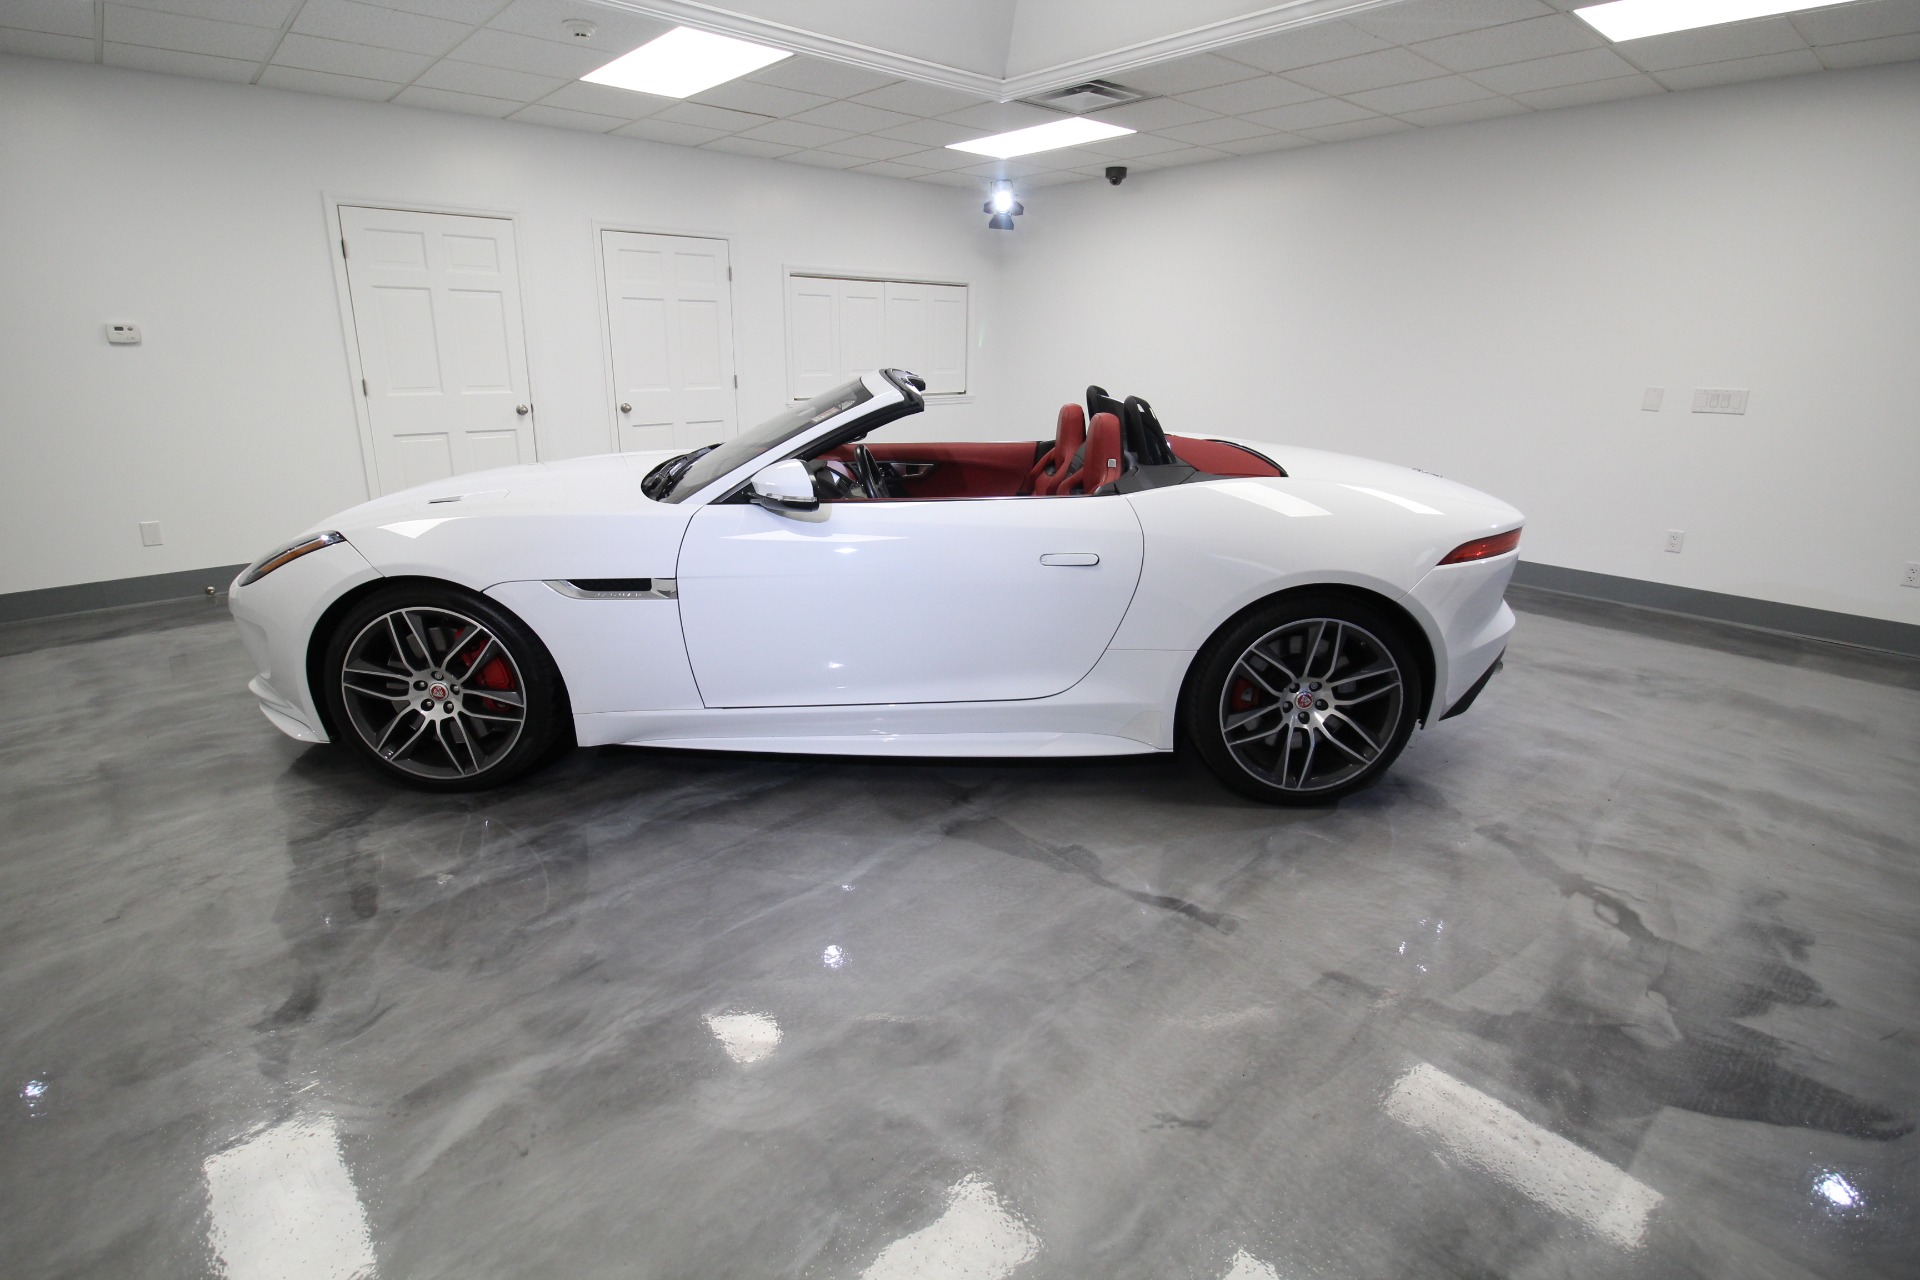 Used 2017 Jaguar F-Type R CONVERTIBLE AWD STUNNING COLOR COMBO WHITE ON RED WITH RED TOP | Albany, NY